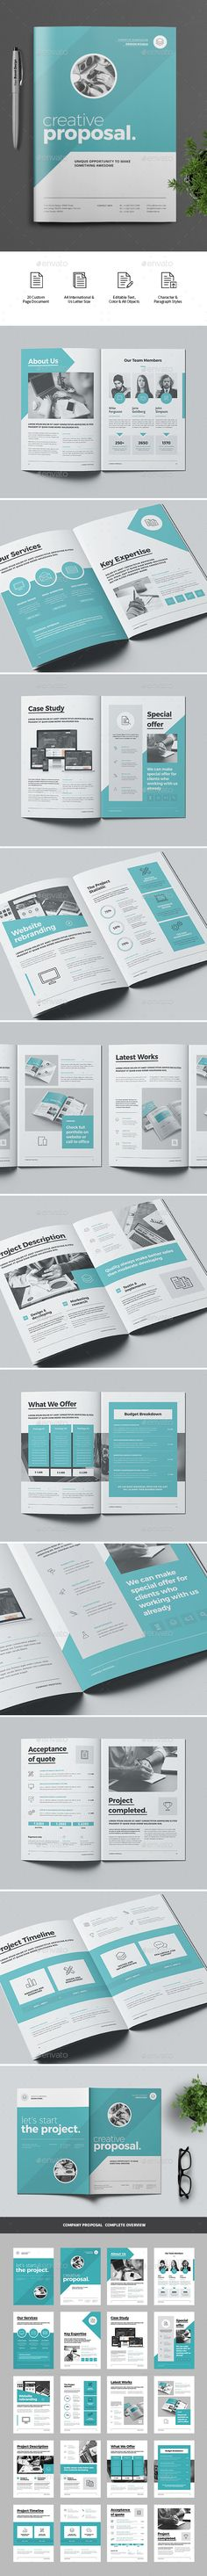 Proposal Template InDesign INDD